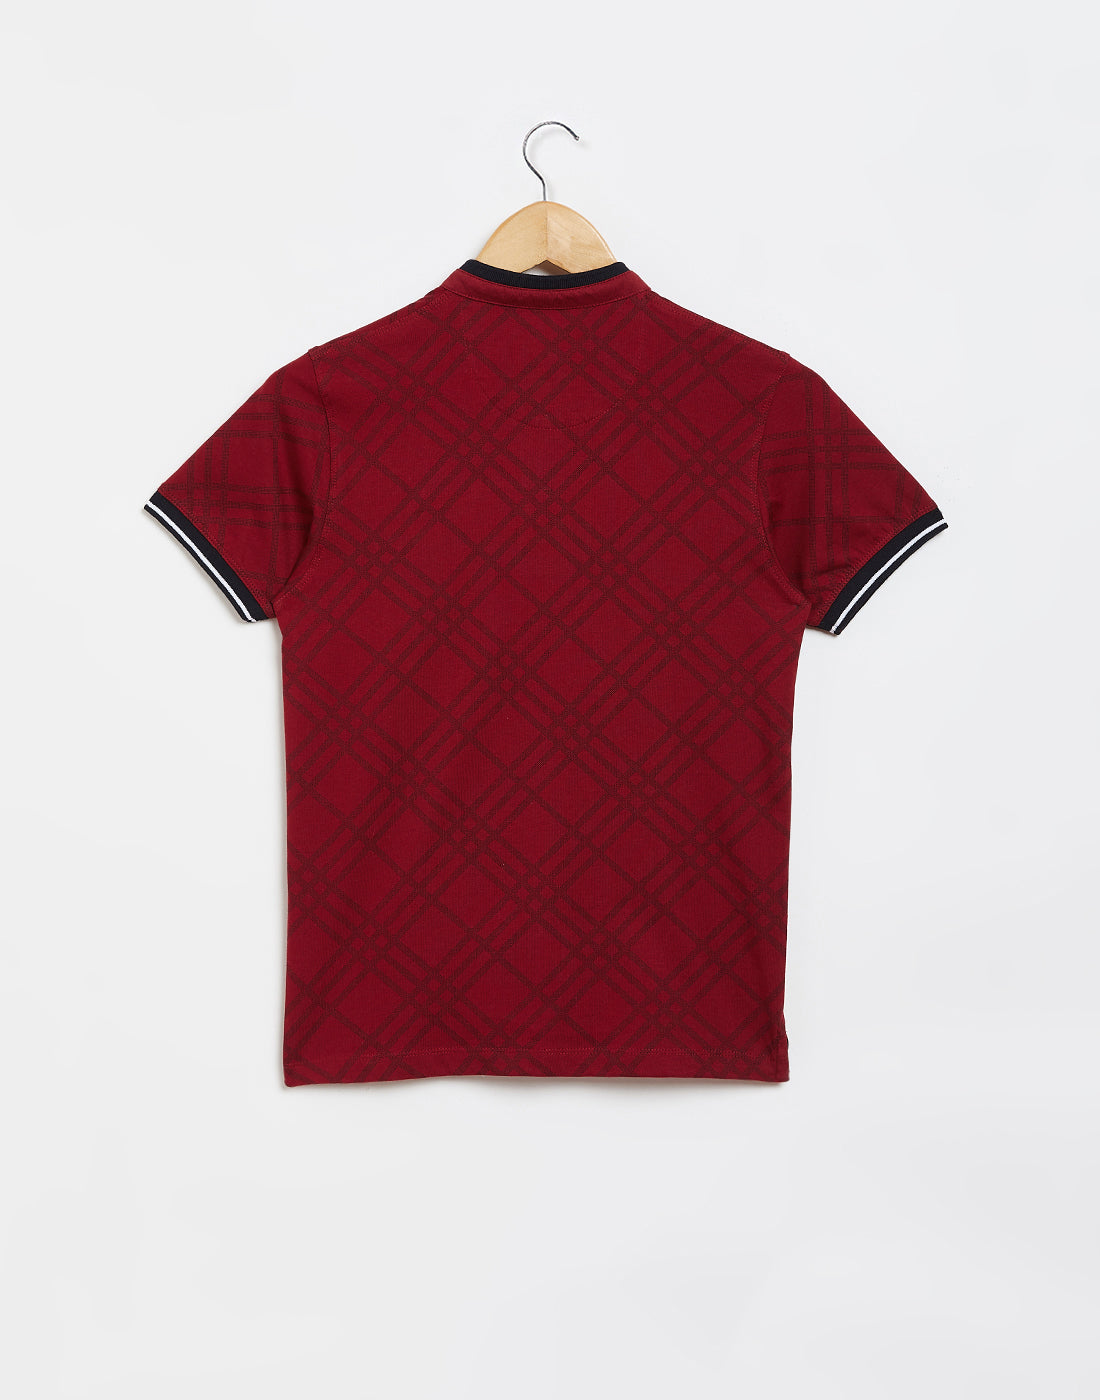 Octave Boys Salsa Red Checked Tshirt